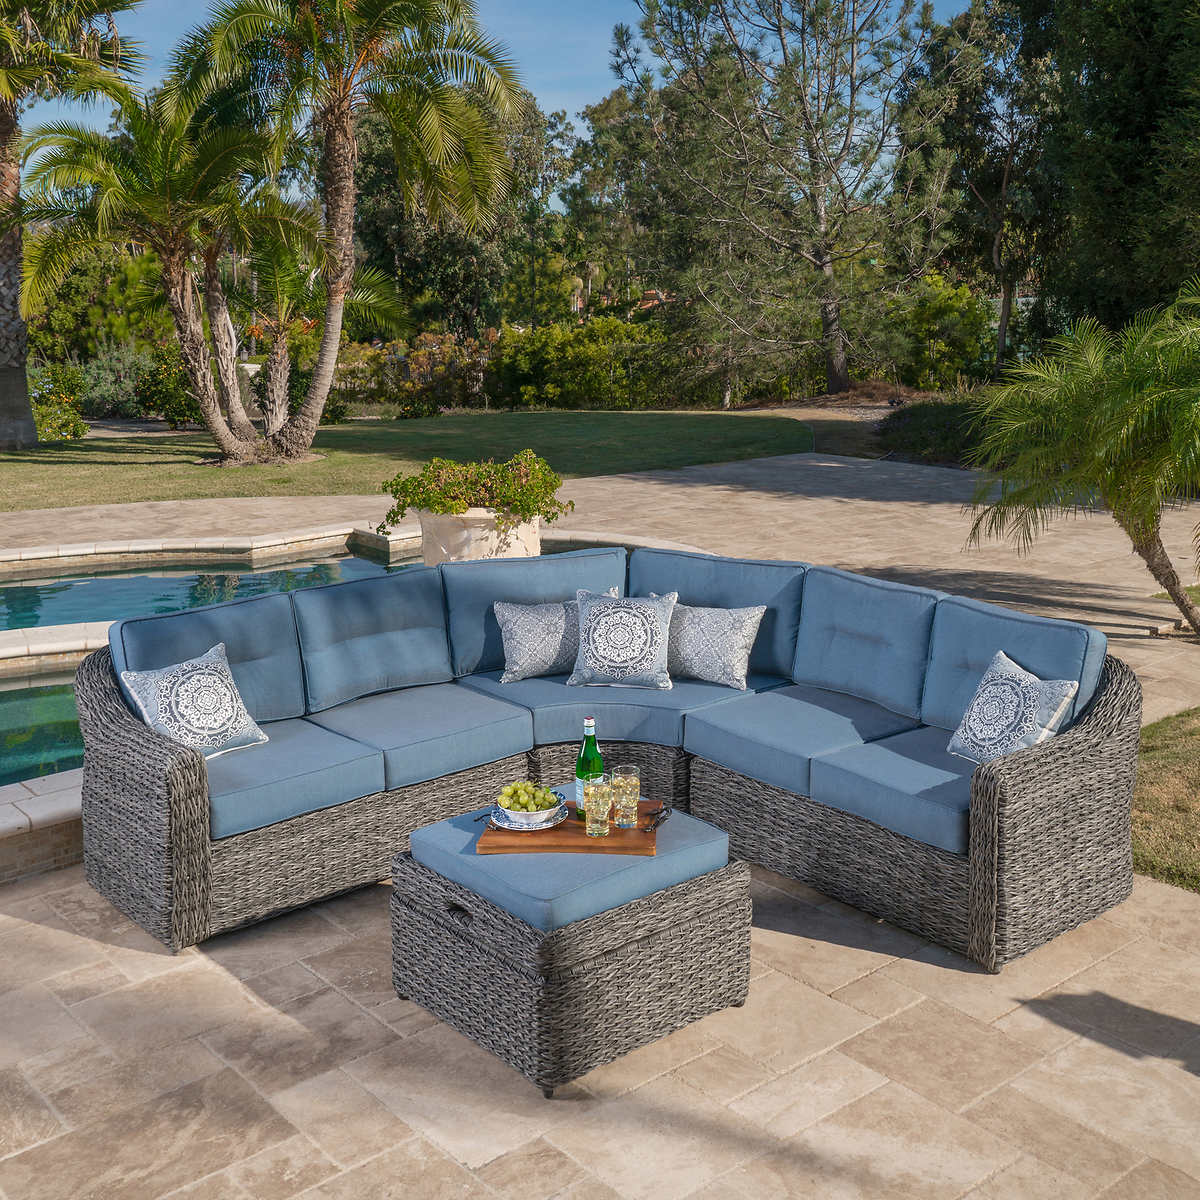 Garden Ridge 4-piece Modular Seating Set by Mission Hills - Seating Sets Costco